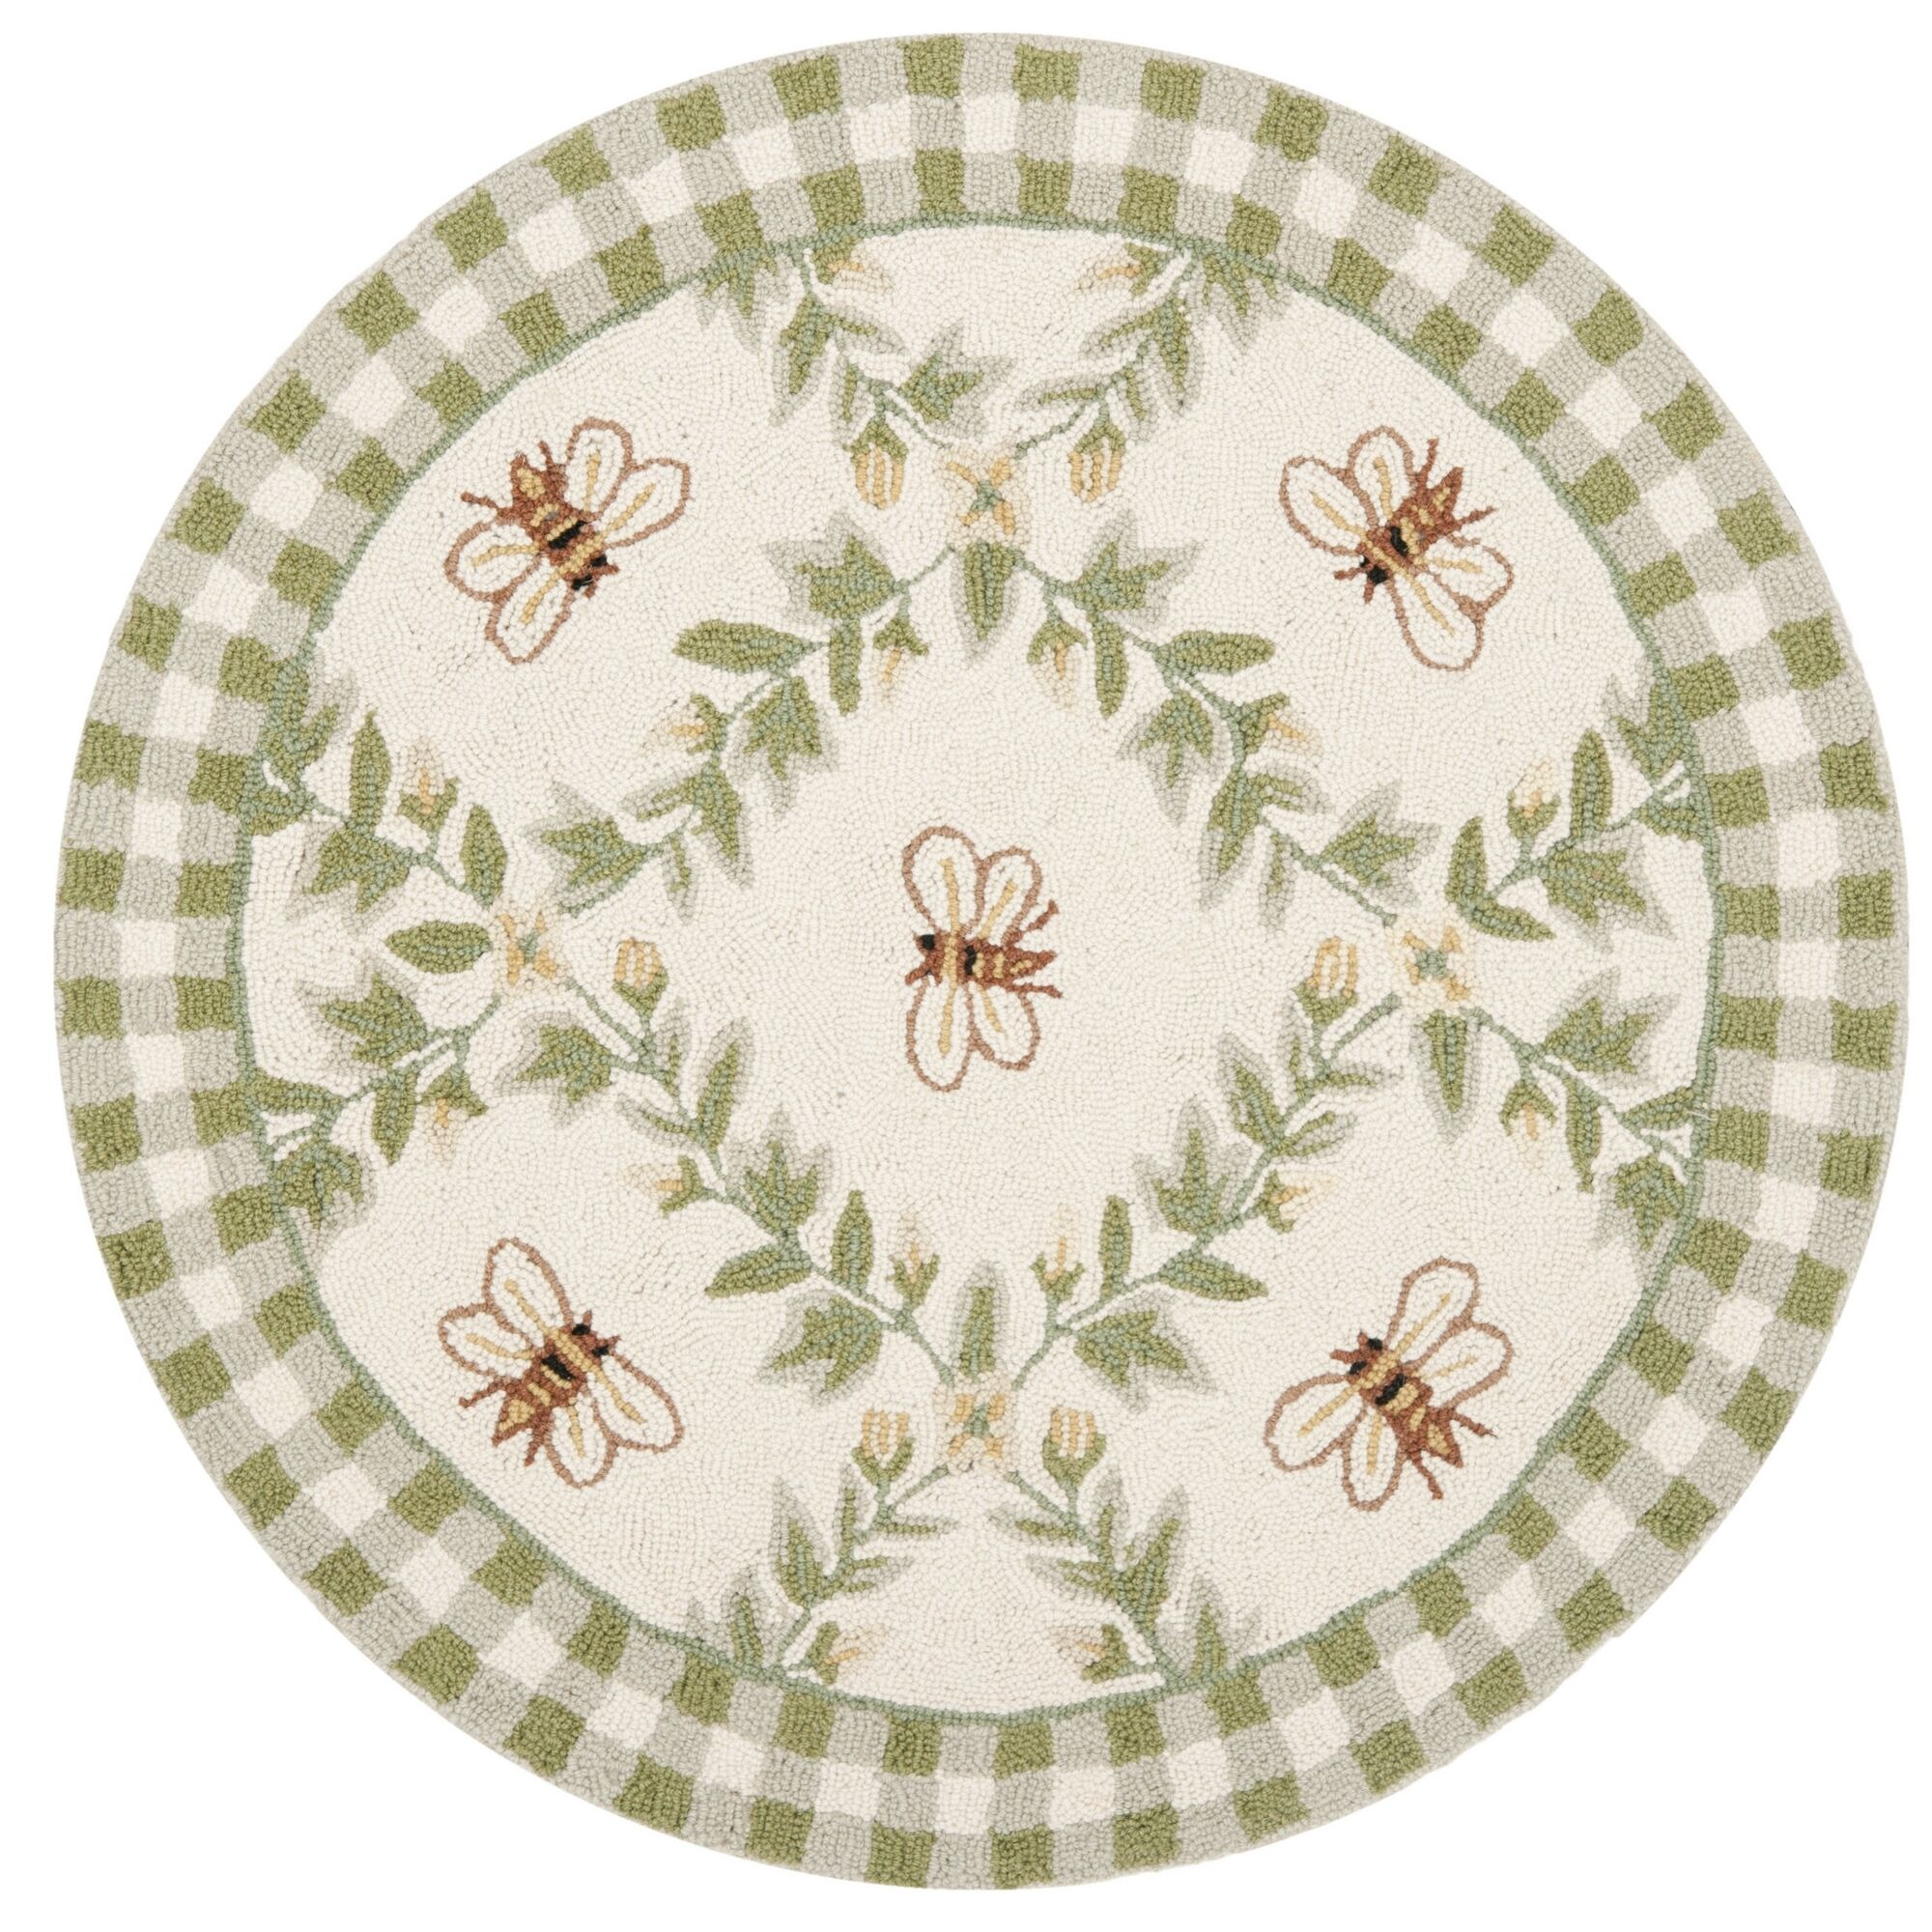 Littell Ivory/Green Bumblebee Area Rug Rug Size: Round 4'